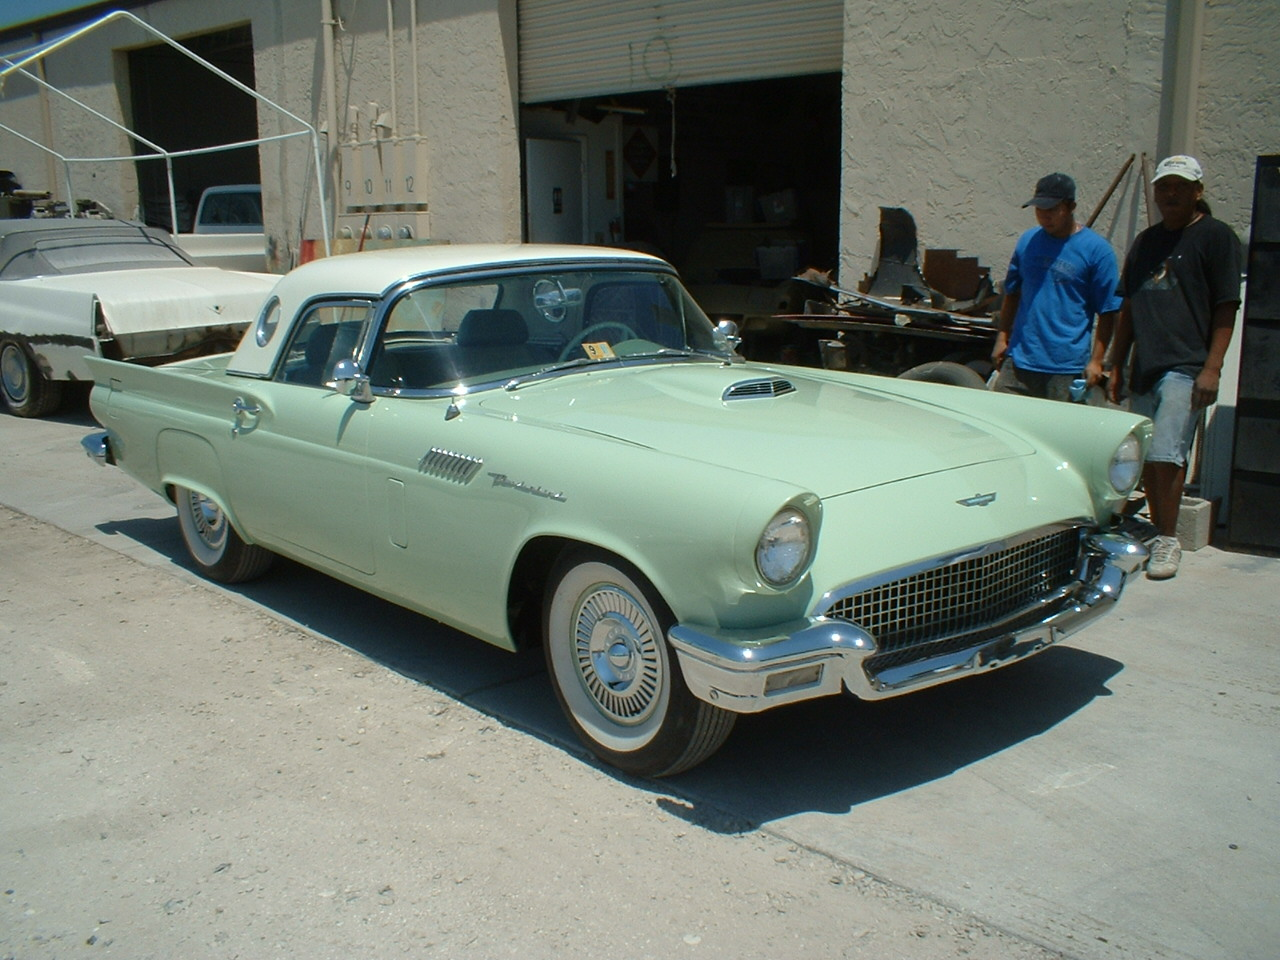 THESE ARE PICTURES OF A NICE 1957 T- BIRD WE DID A LITTLE METAL WORK